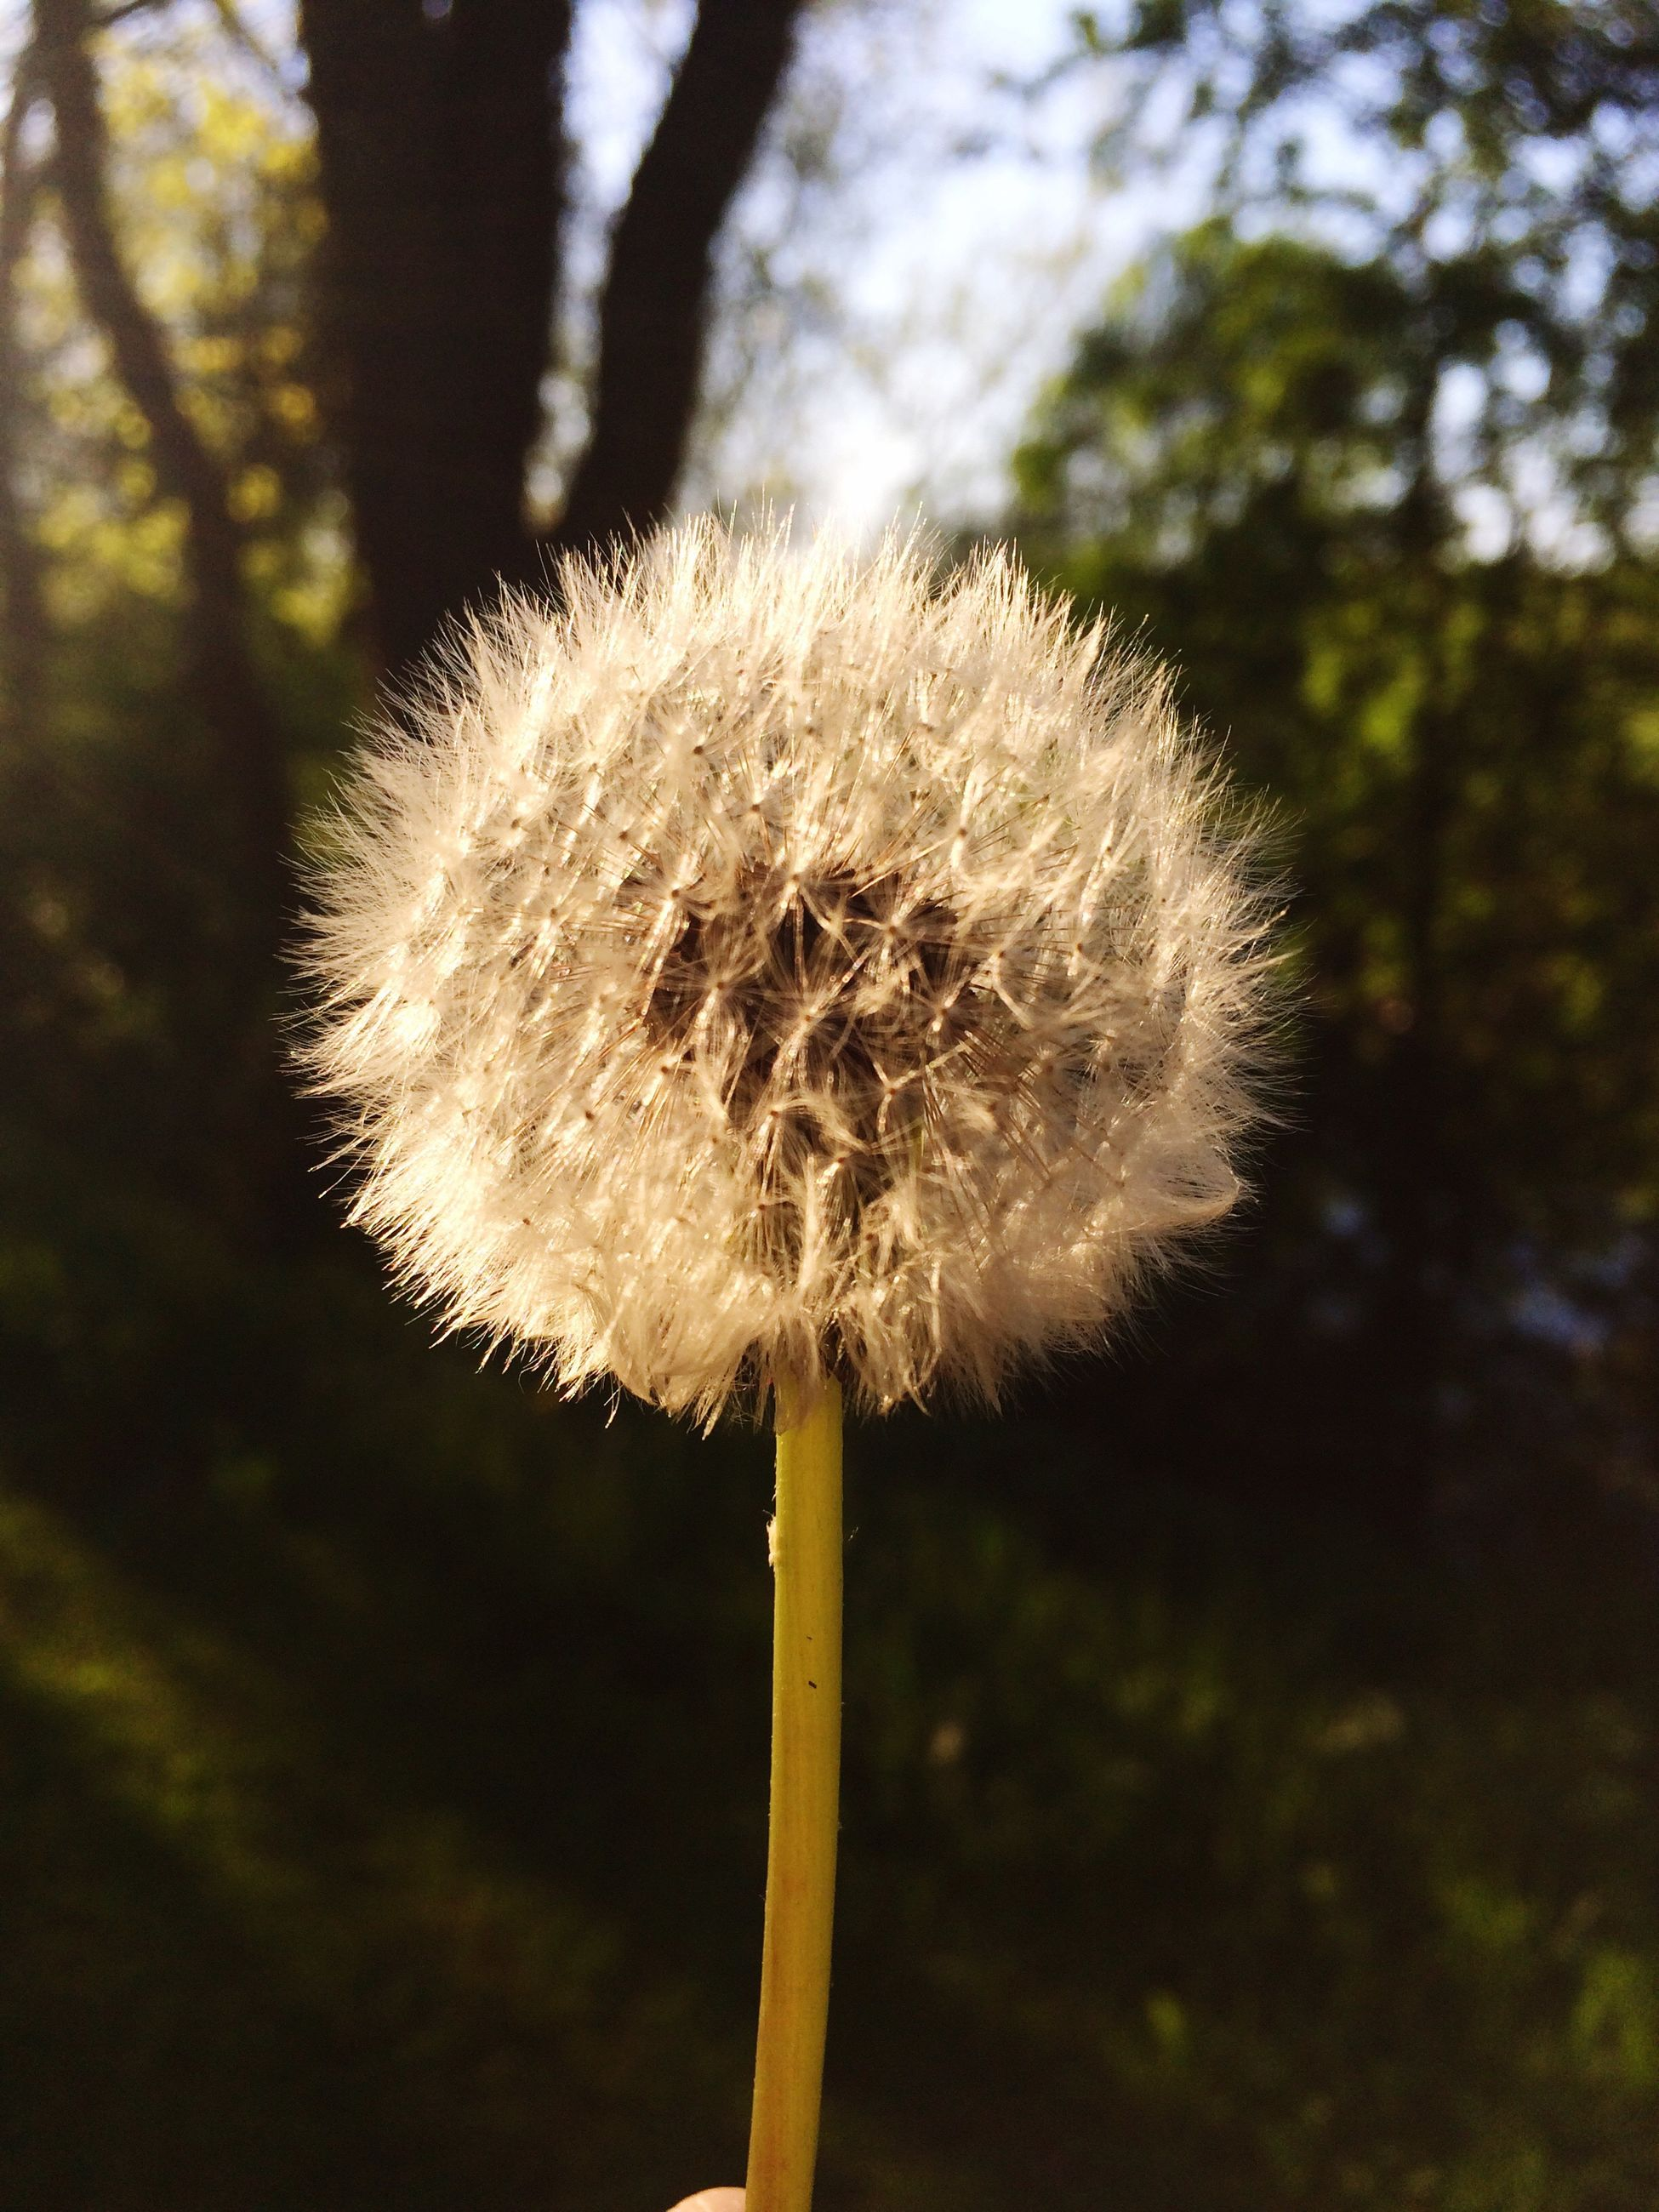 dandelion, growth, flower, close-up, focus on foreground, fragility, nature, flower head, single flower, beauty in nature, freshness, stem, uncultivated, softness, white color, day, outdoors, tranquility, plant, no people